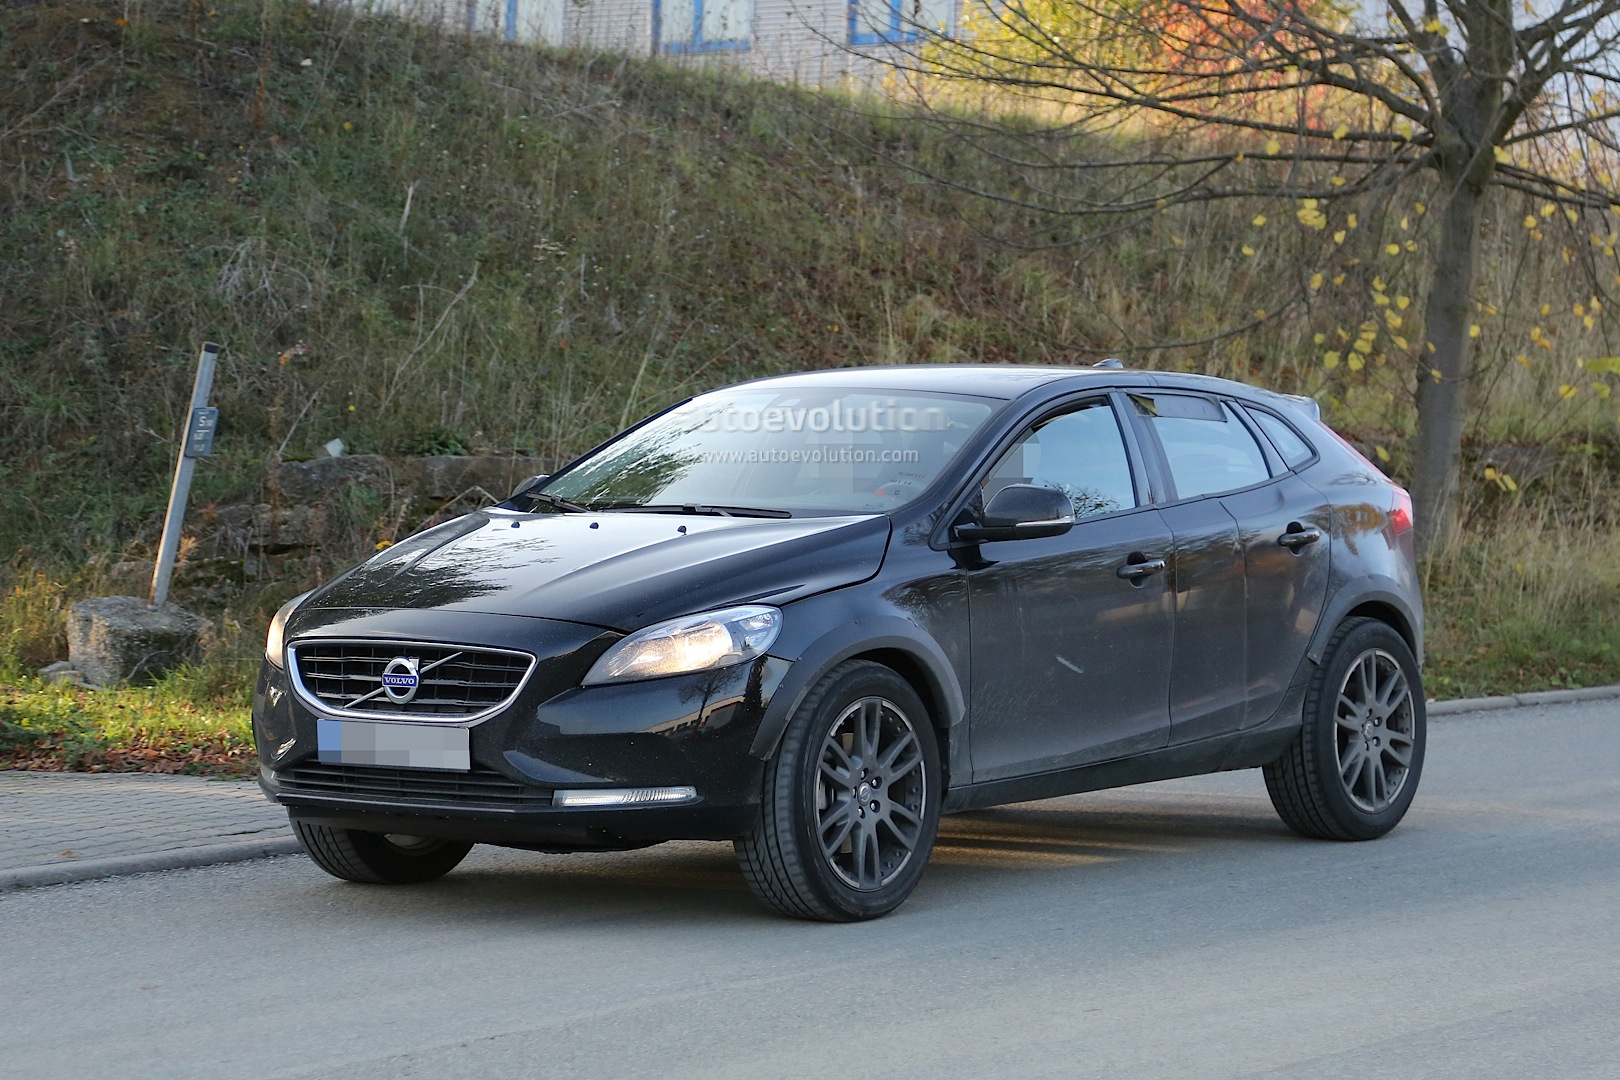 2018 volvo xc60 spy shots. 13 photos 2018 volvo xc60 spy shots